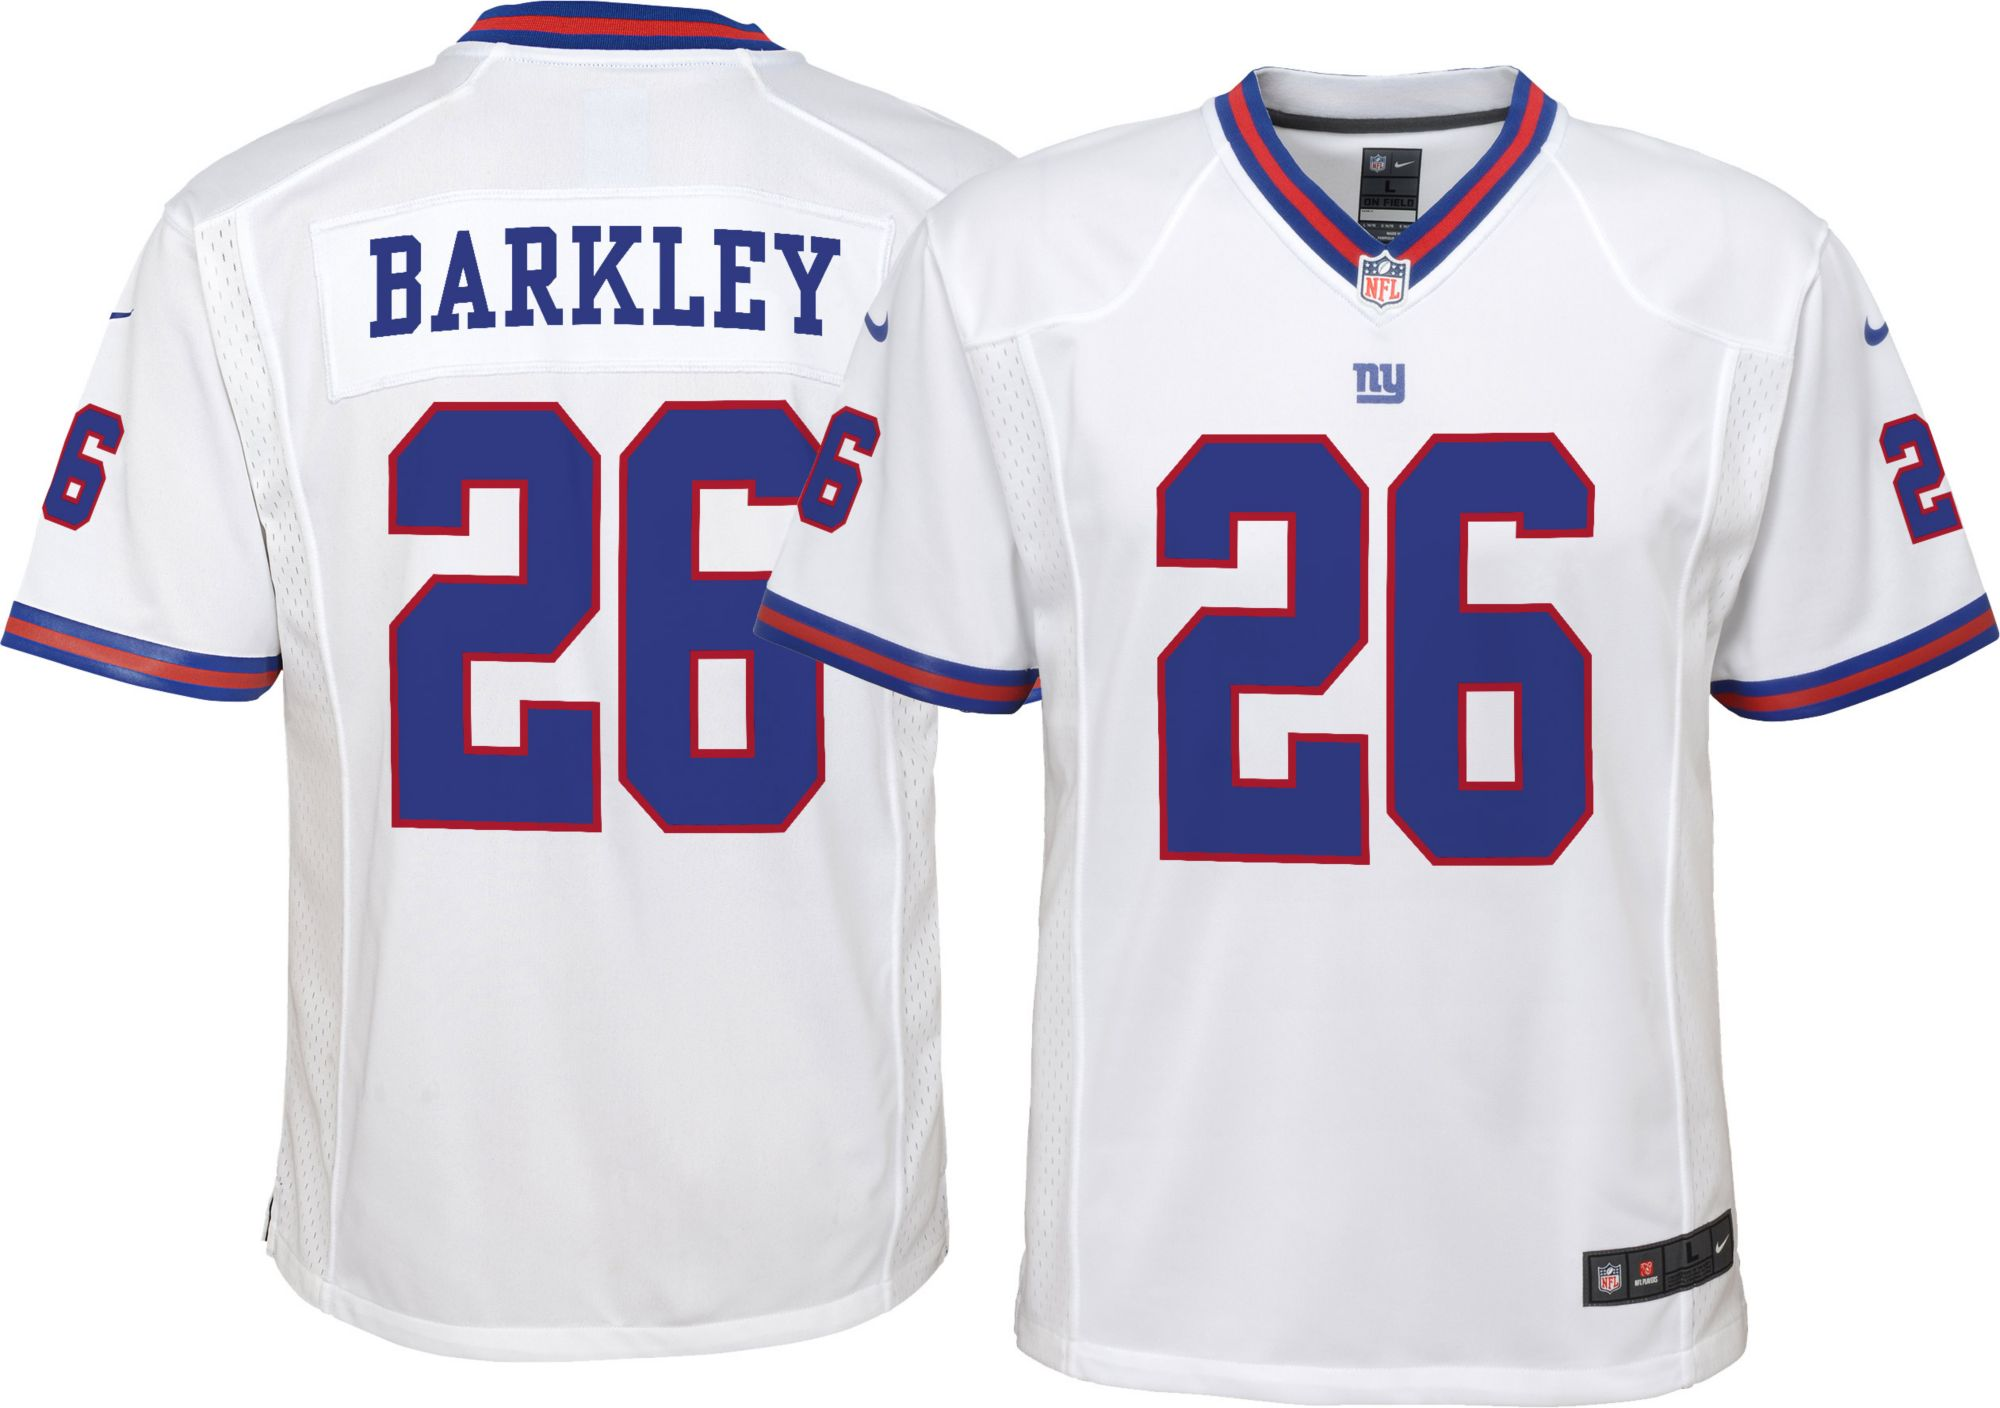 598c03a0ddcea Nike Youth Color Rush Game Jersey New York Saquon Barkley #26, White ...